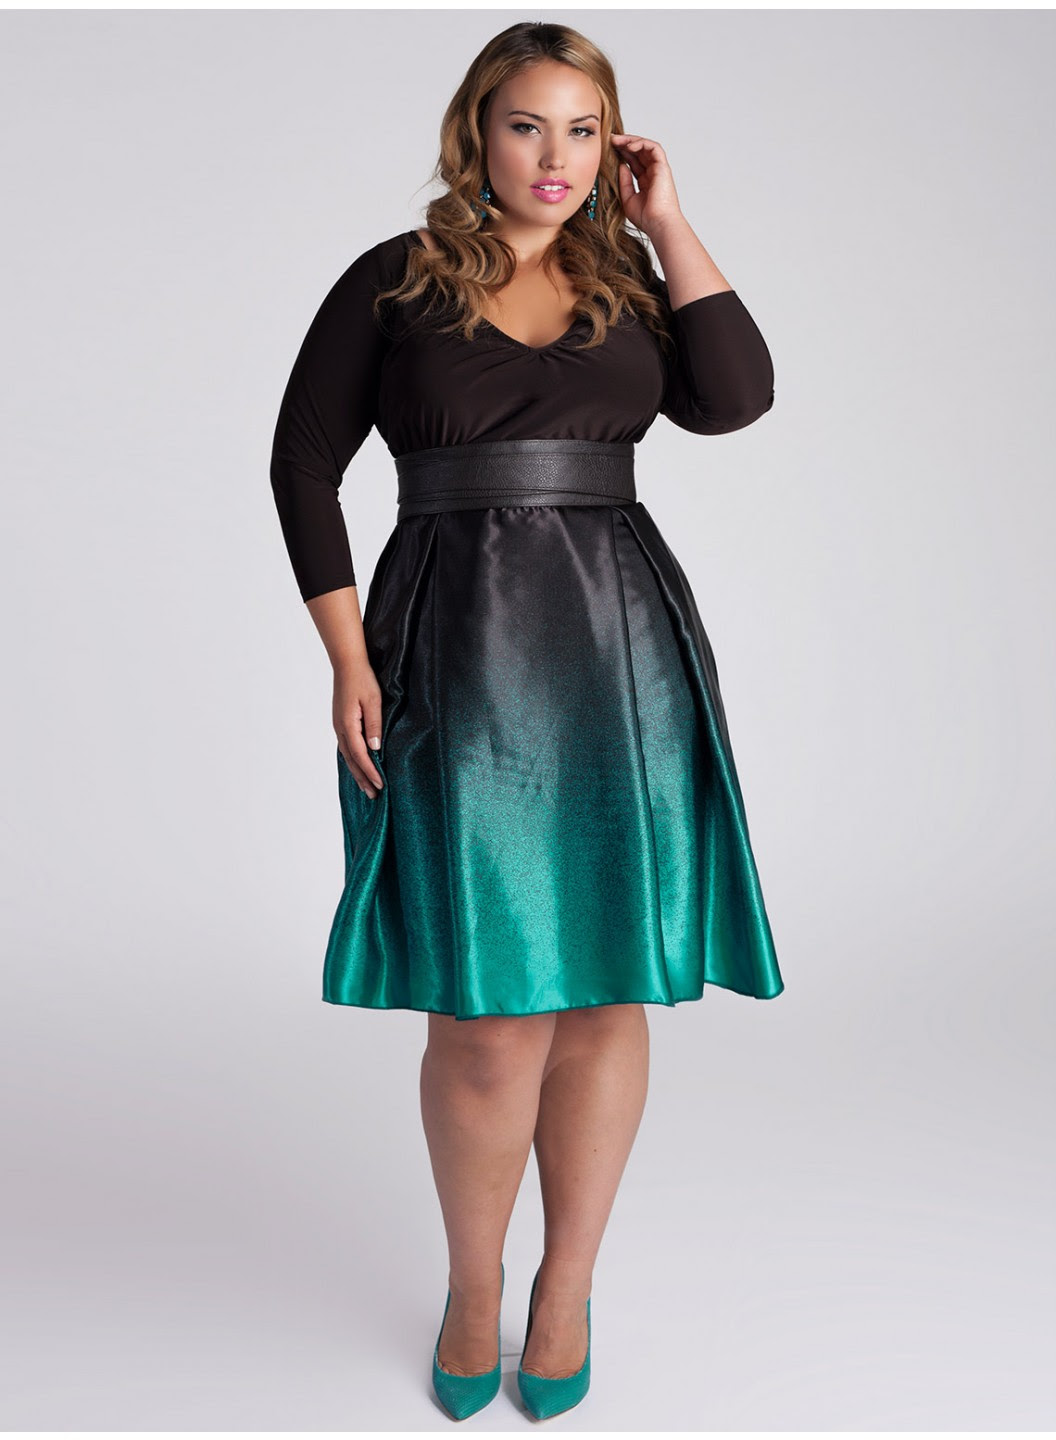 139e1fcb47d Plus Size Homecoming Dresses Belk - Data Dynamic AG